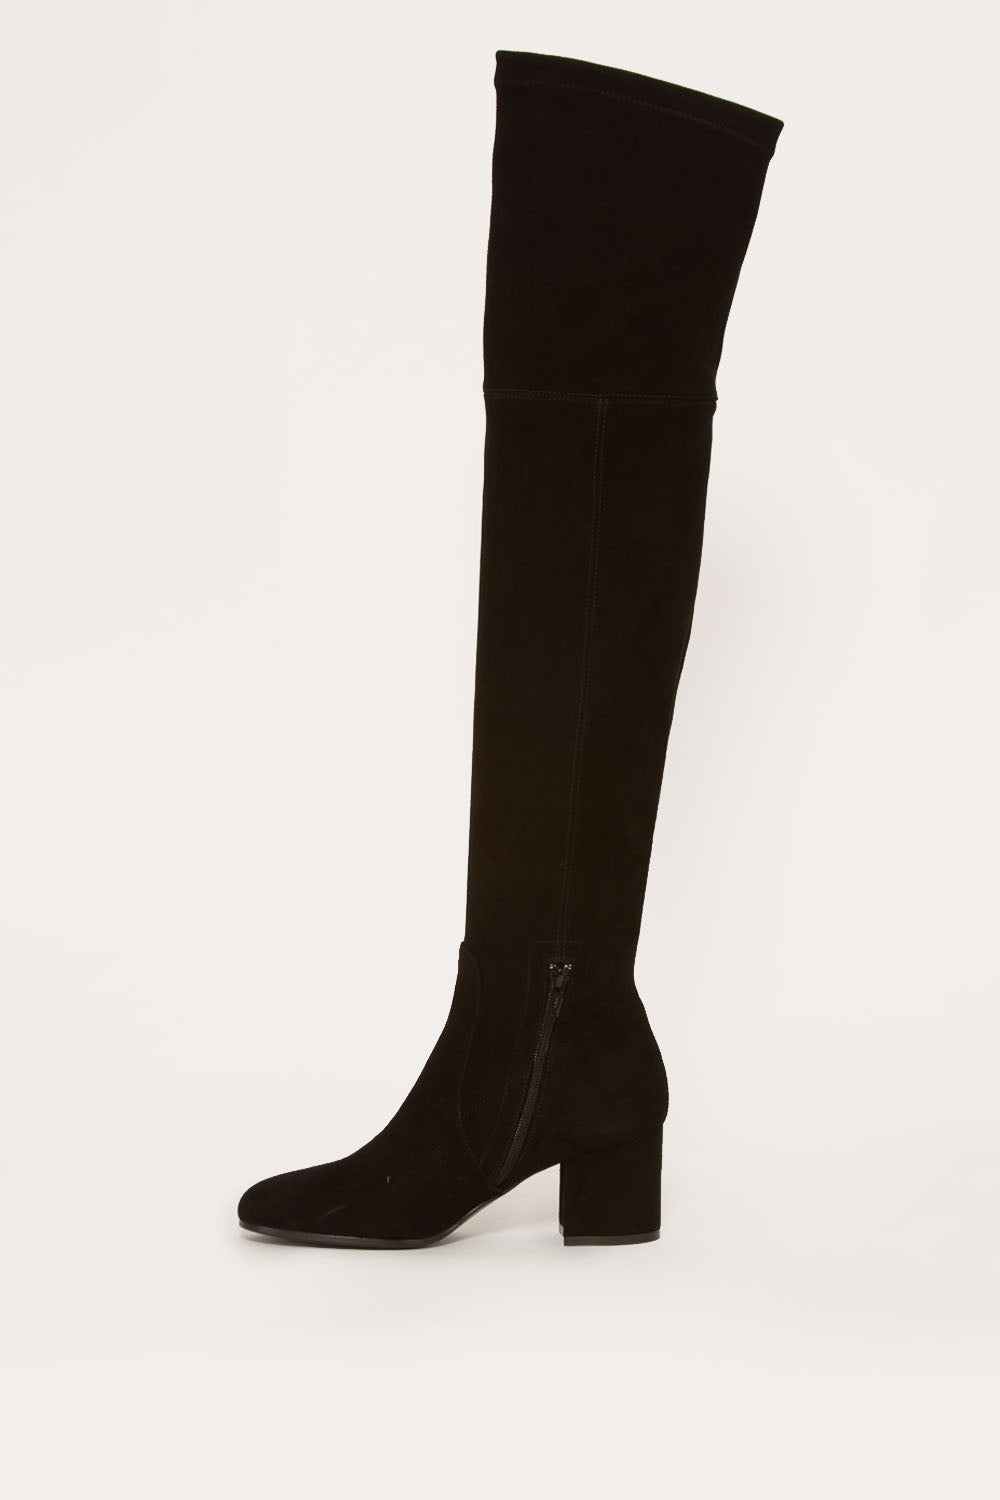 MADISON ET CIEOVER THE KNEE BOOTS9121